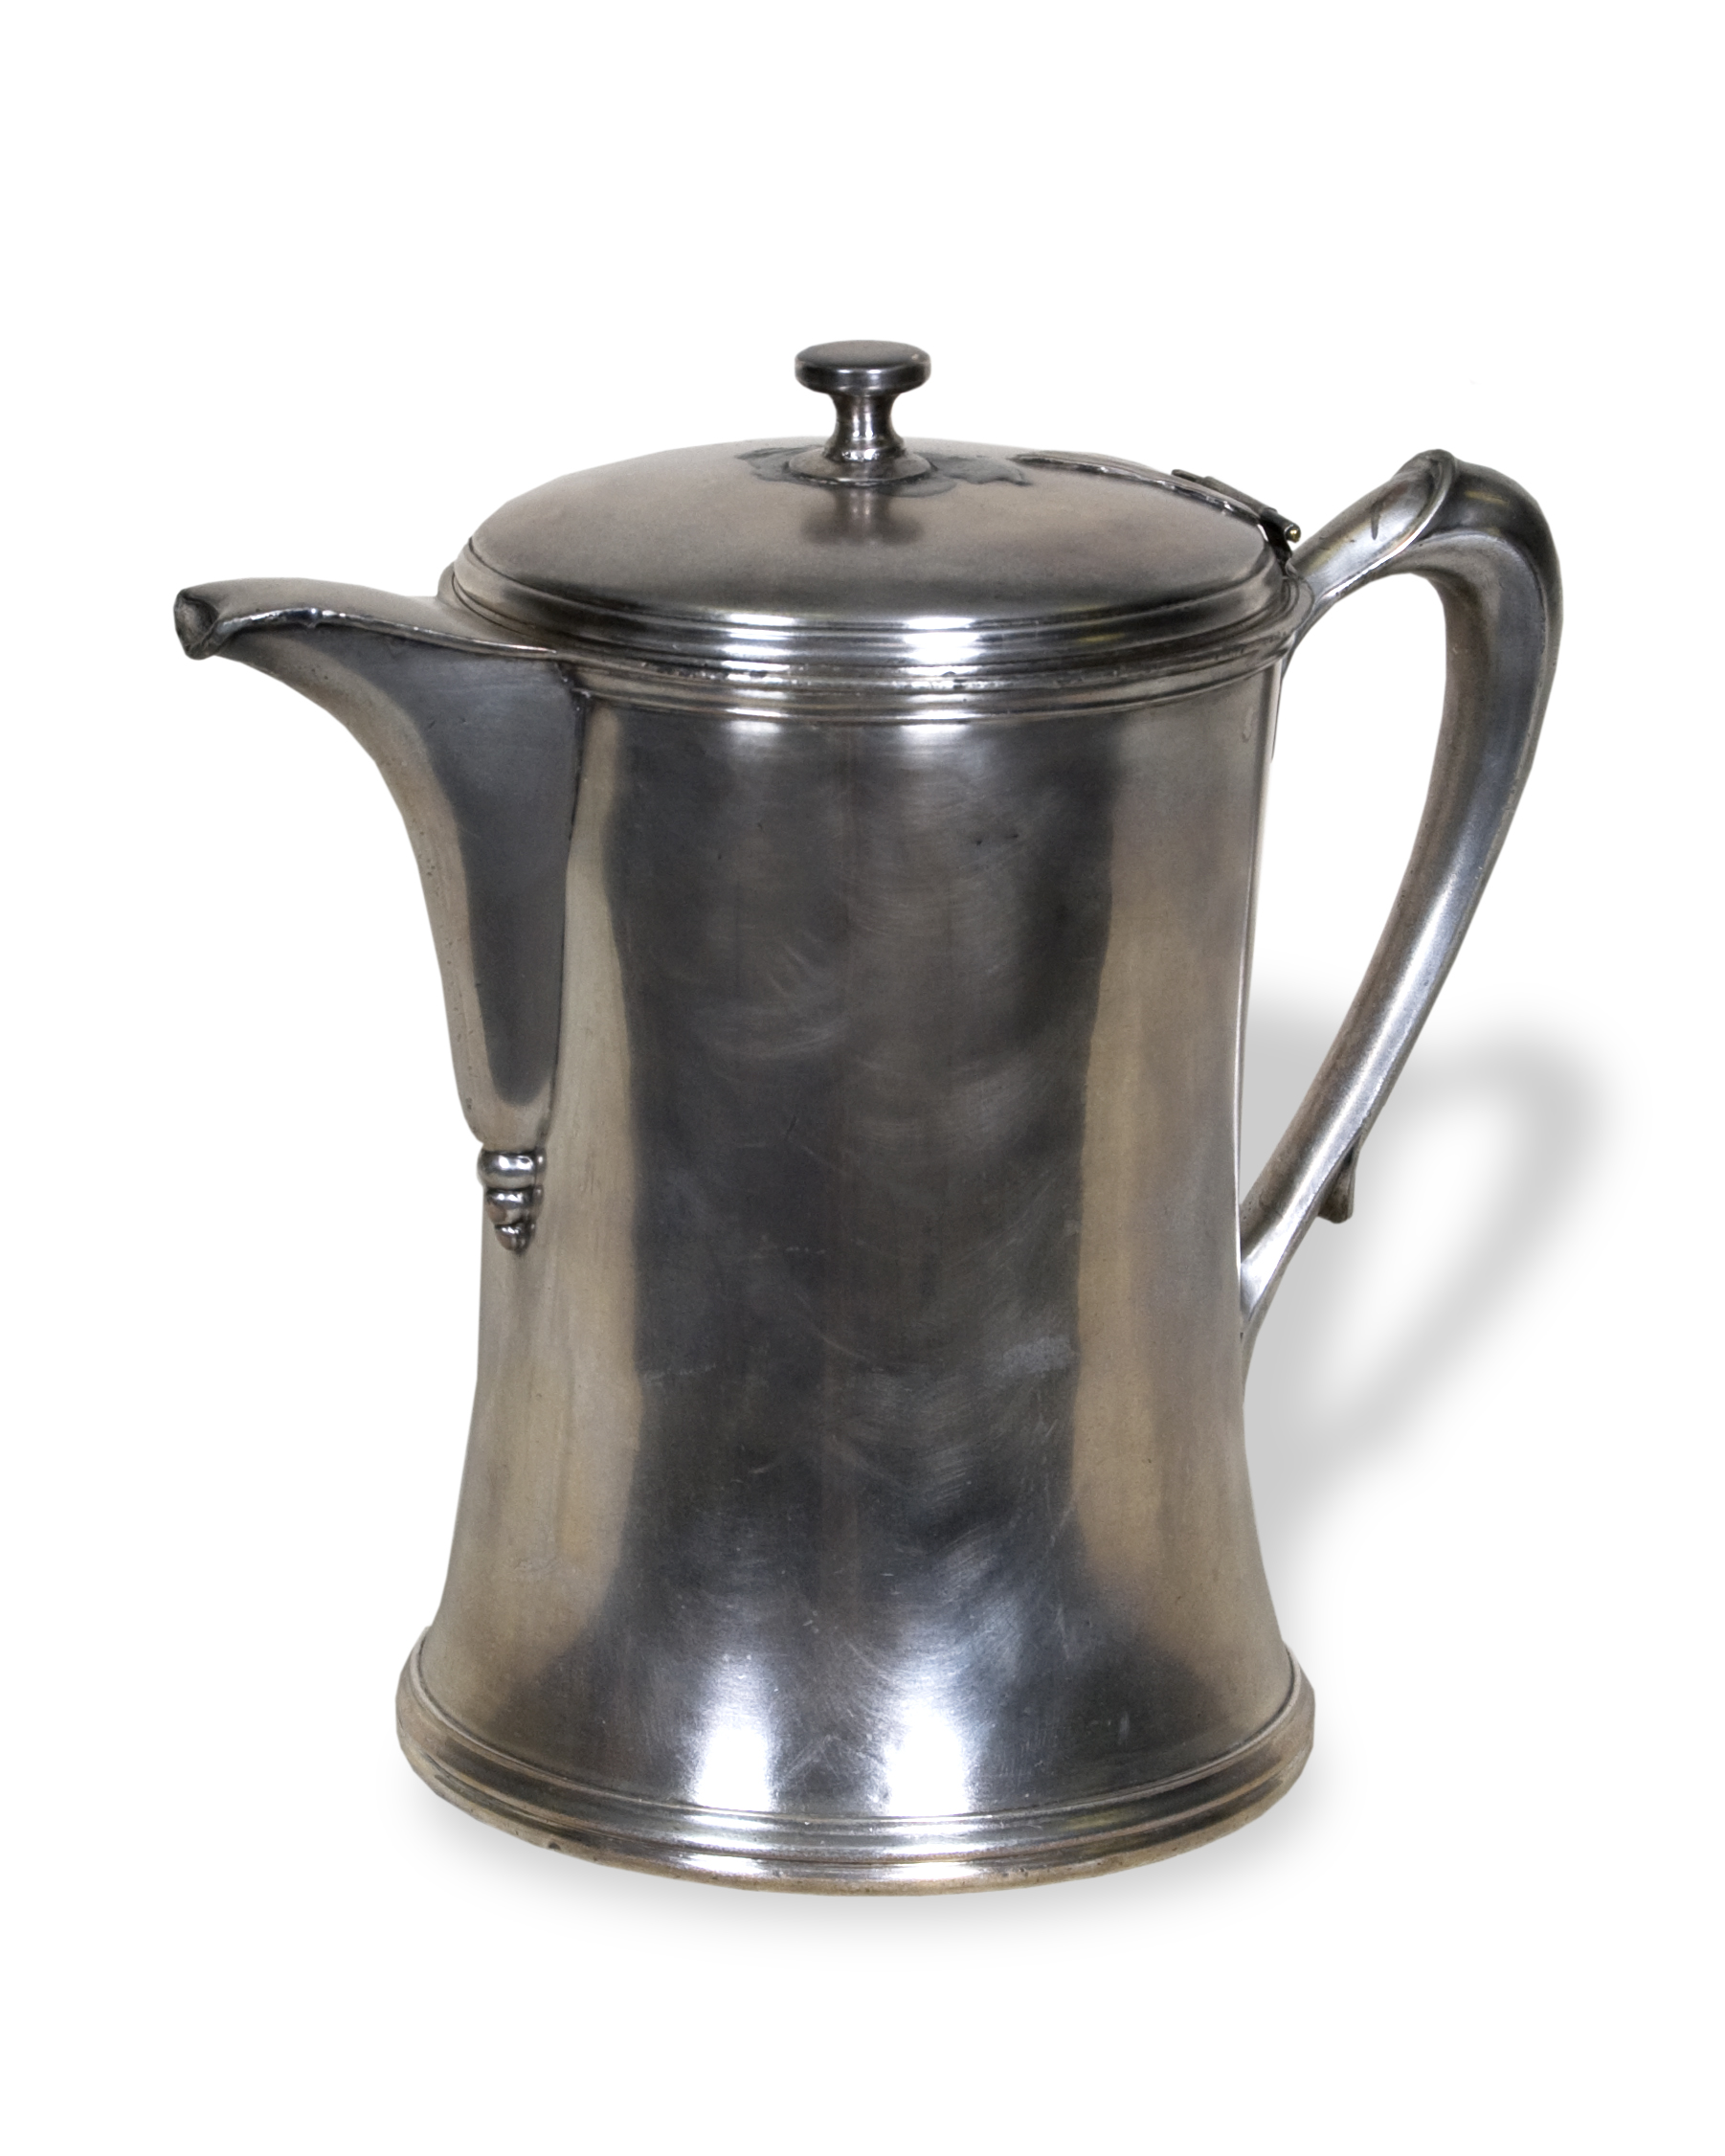 Harvey House coffeepot